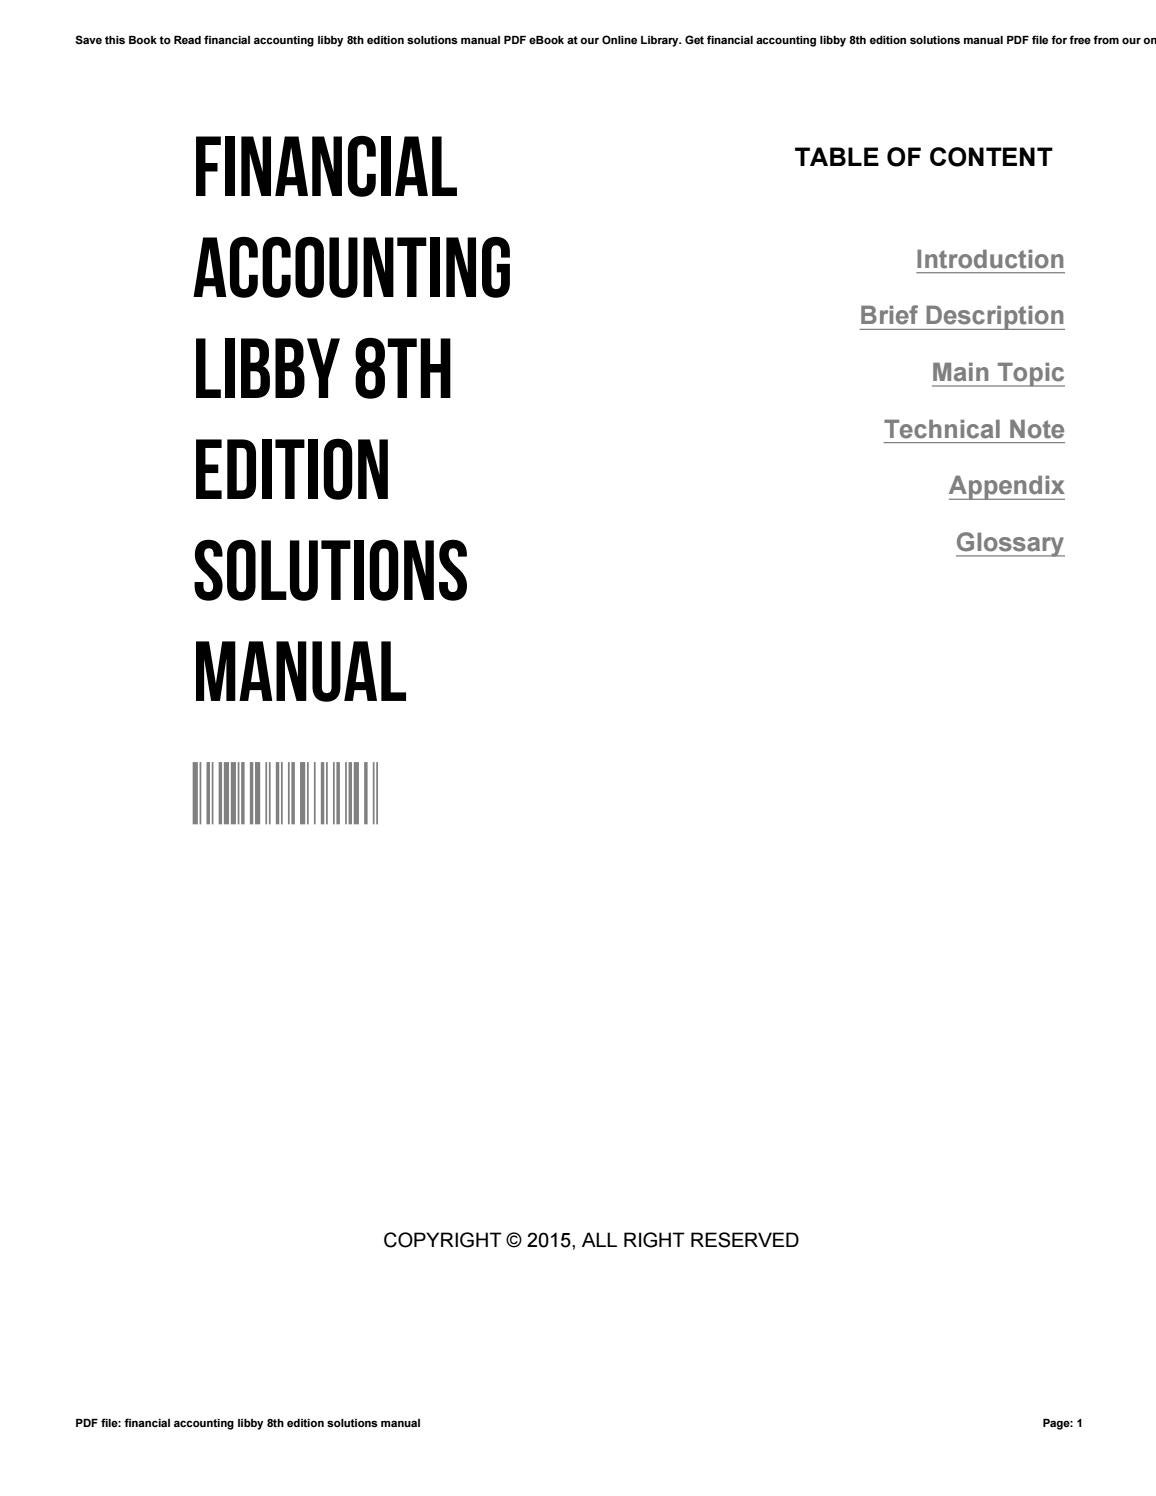 Financial accounting libby 8th edition solutions manual by